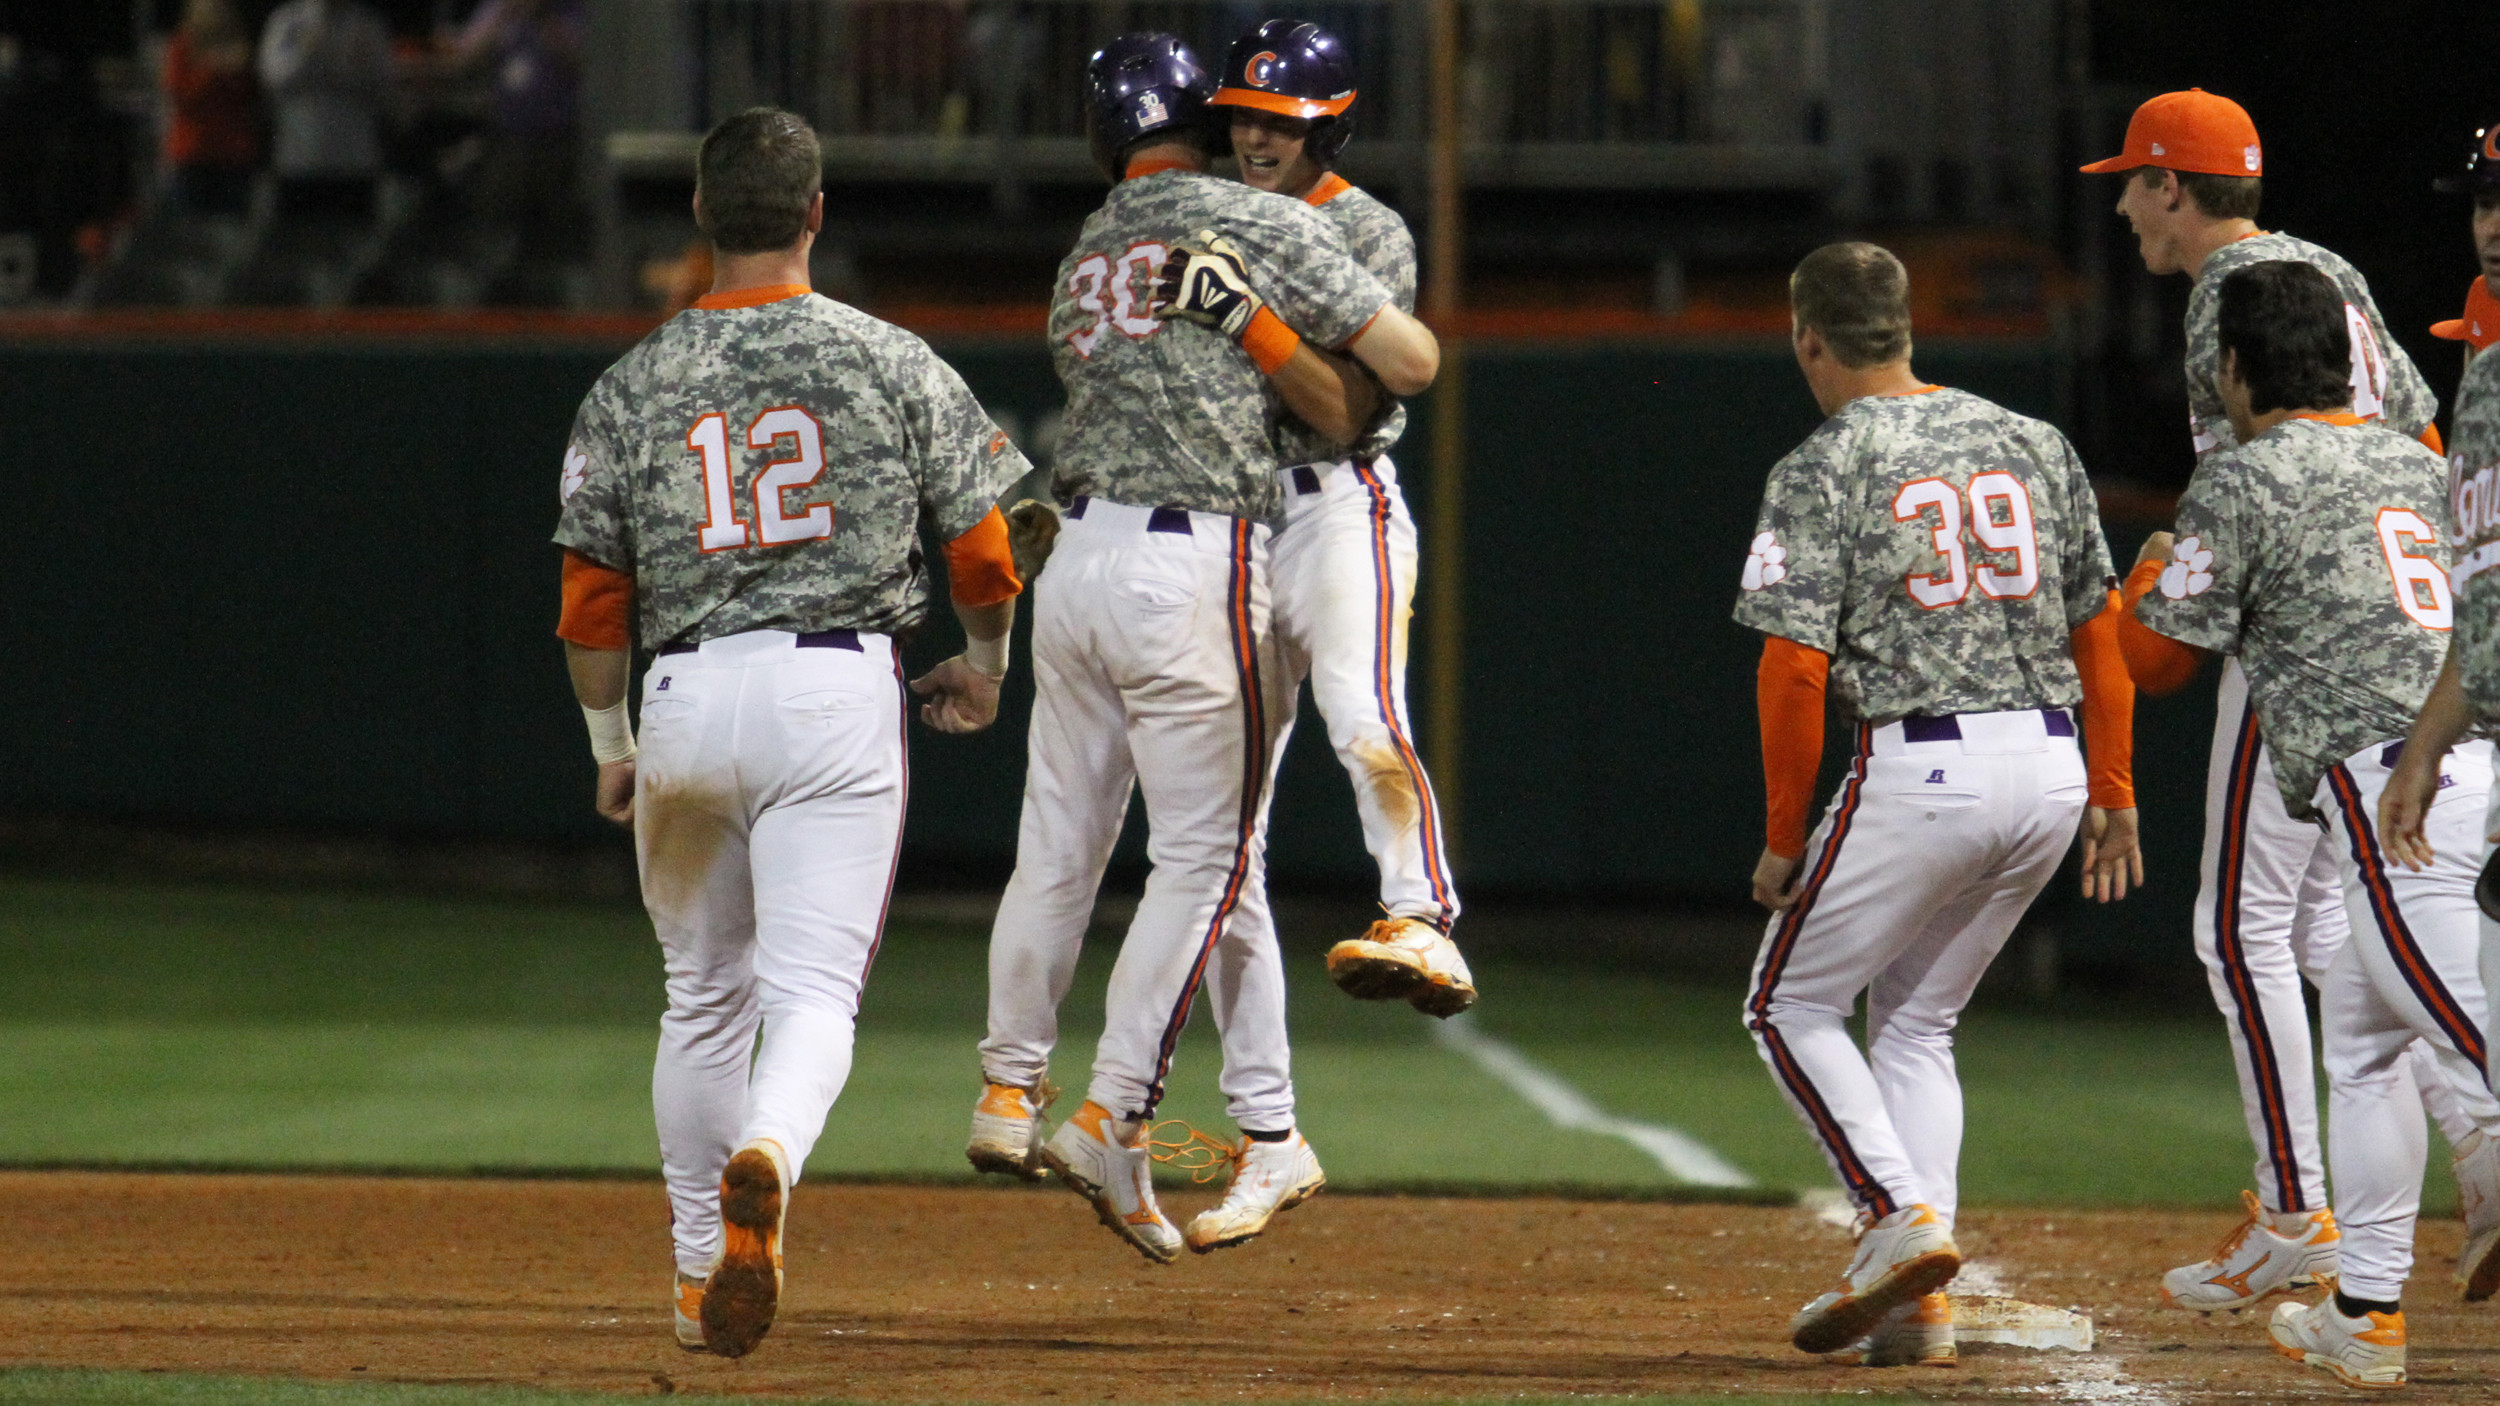 #13 Clemson Rallies For 4-3 Walkoff Win Over #19 Georgia Tech in 11 Innings in Game 2 of Doubleheader Friday